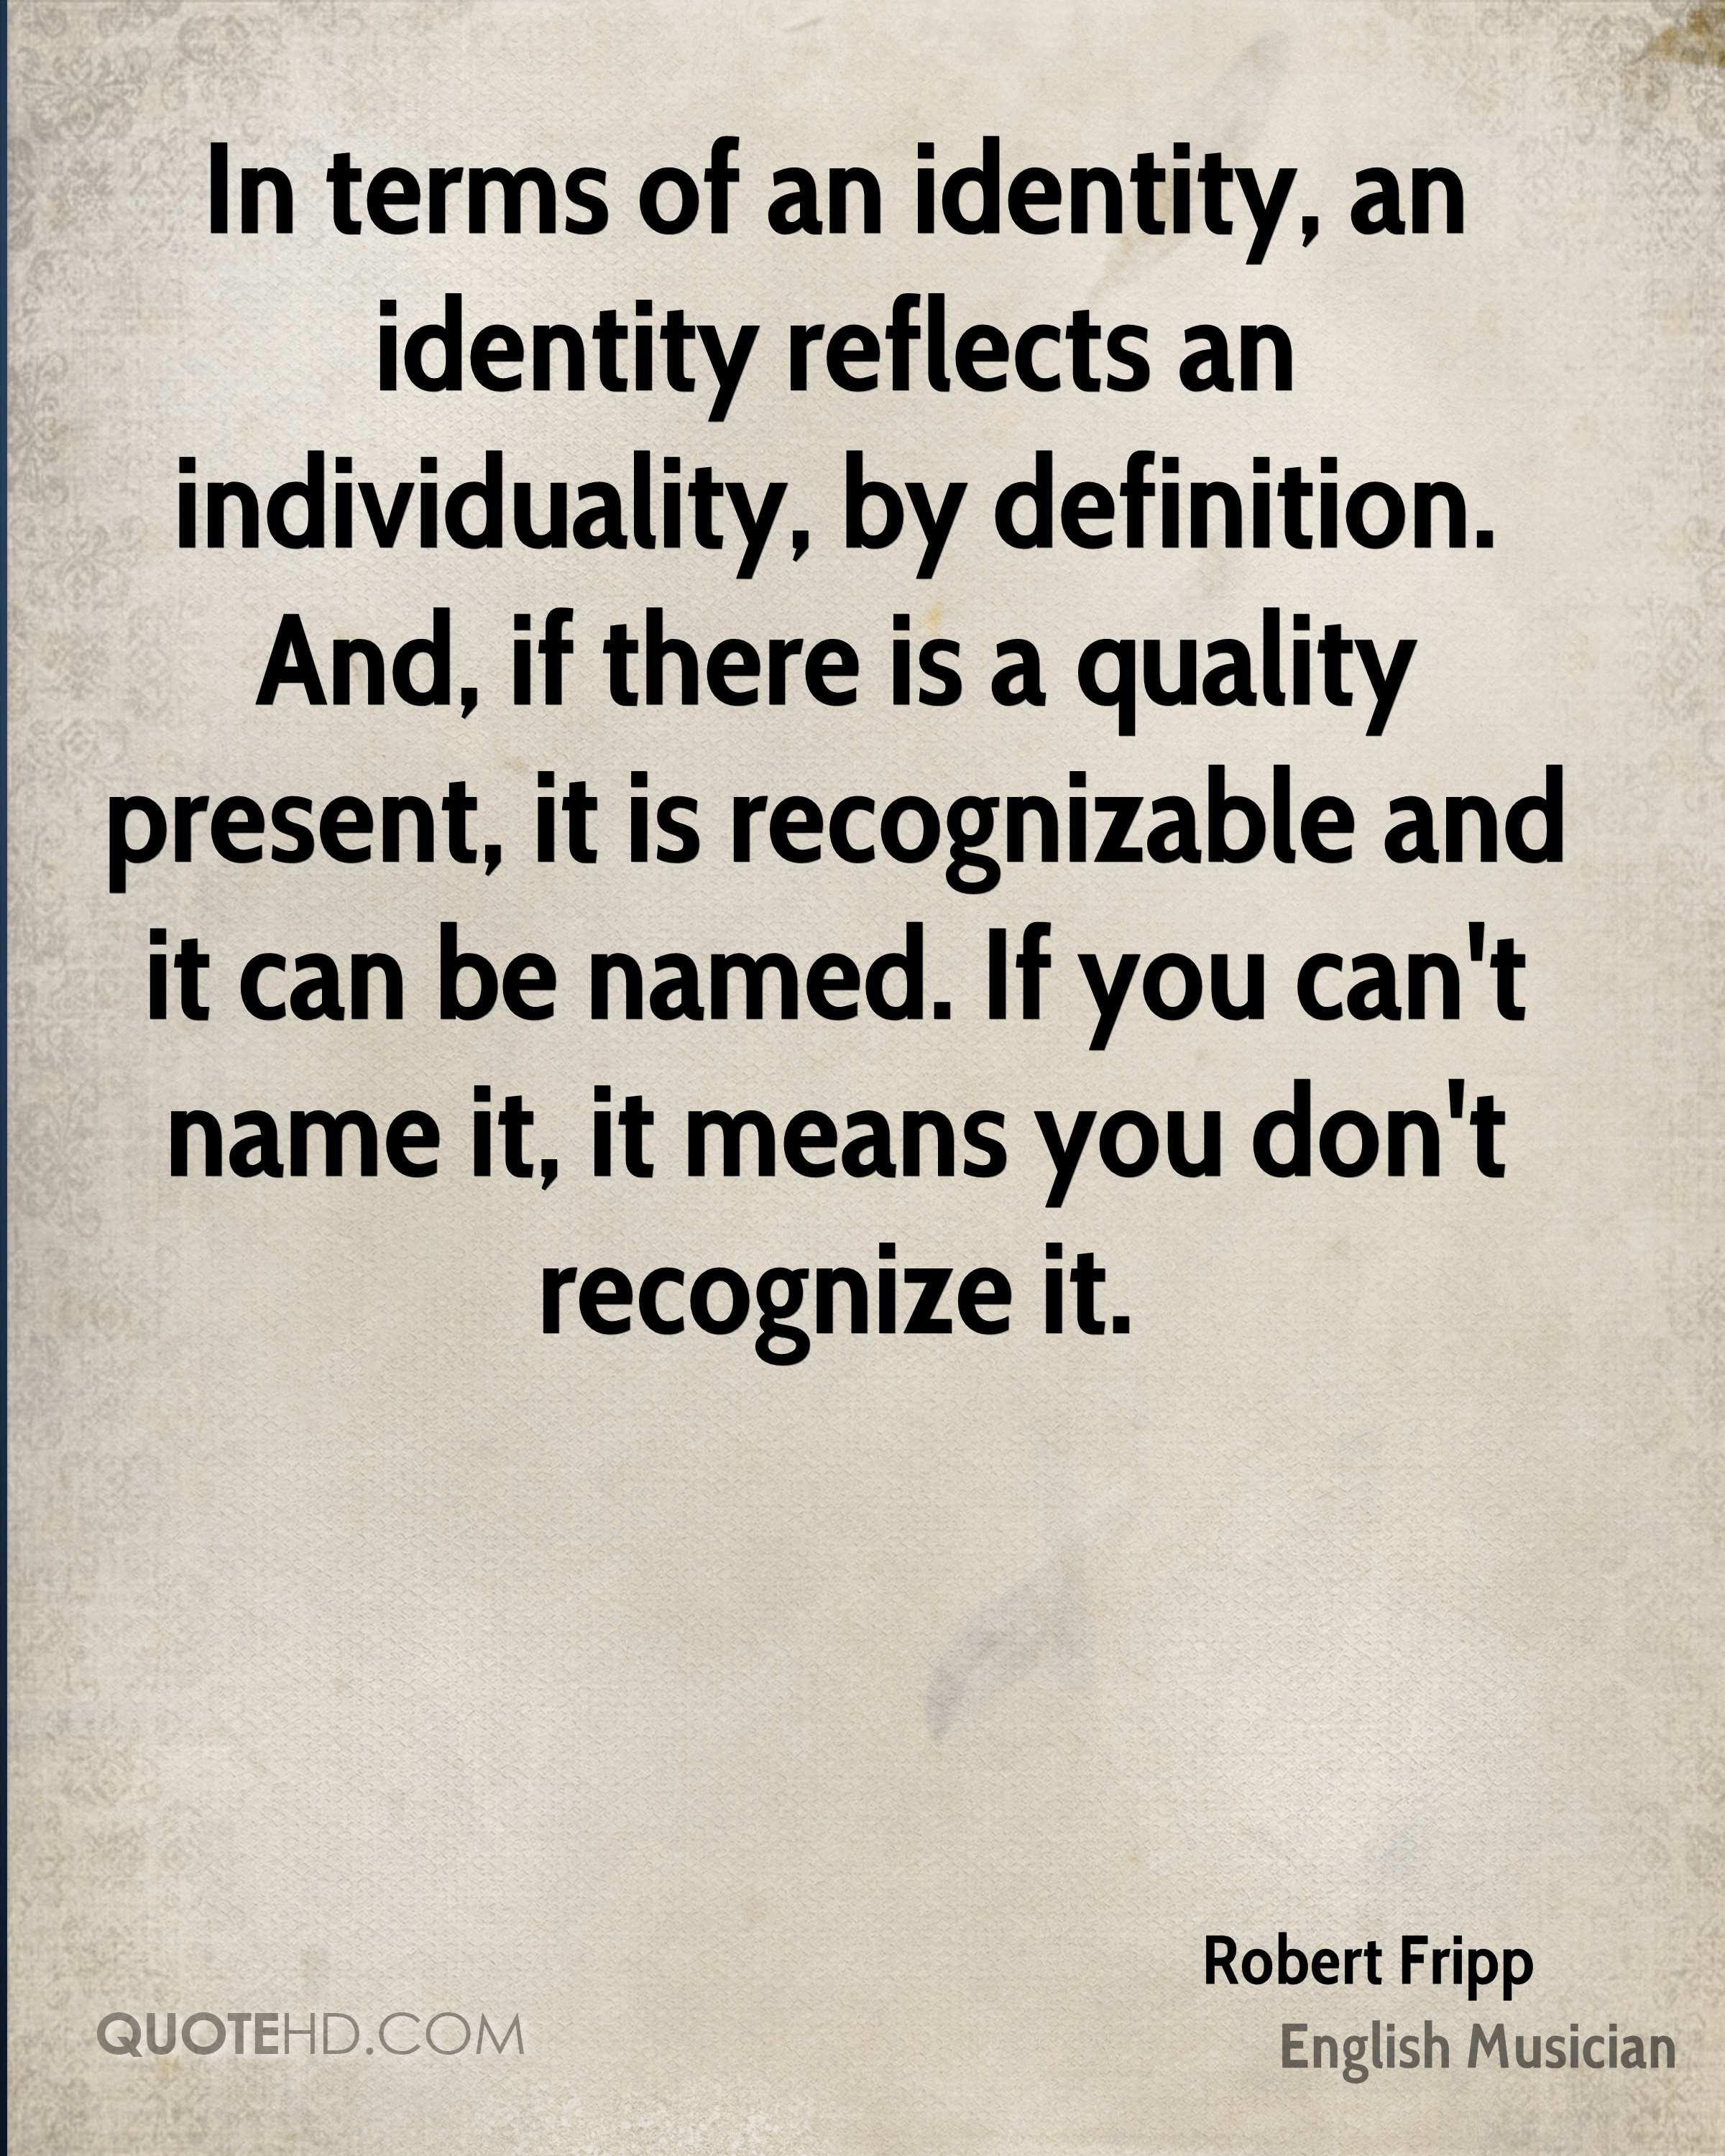 In terms of an identity, an identity reflects an individuality, by definition. And, if there is a quality present, it is recognizable and it can be named. If you can't name it, it means you don't recognize it.